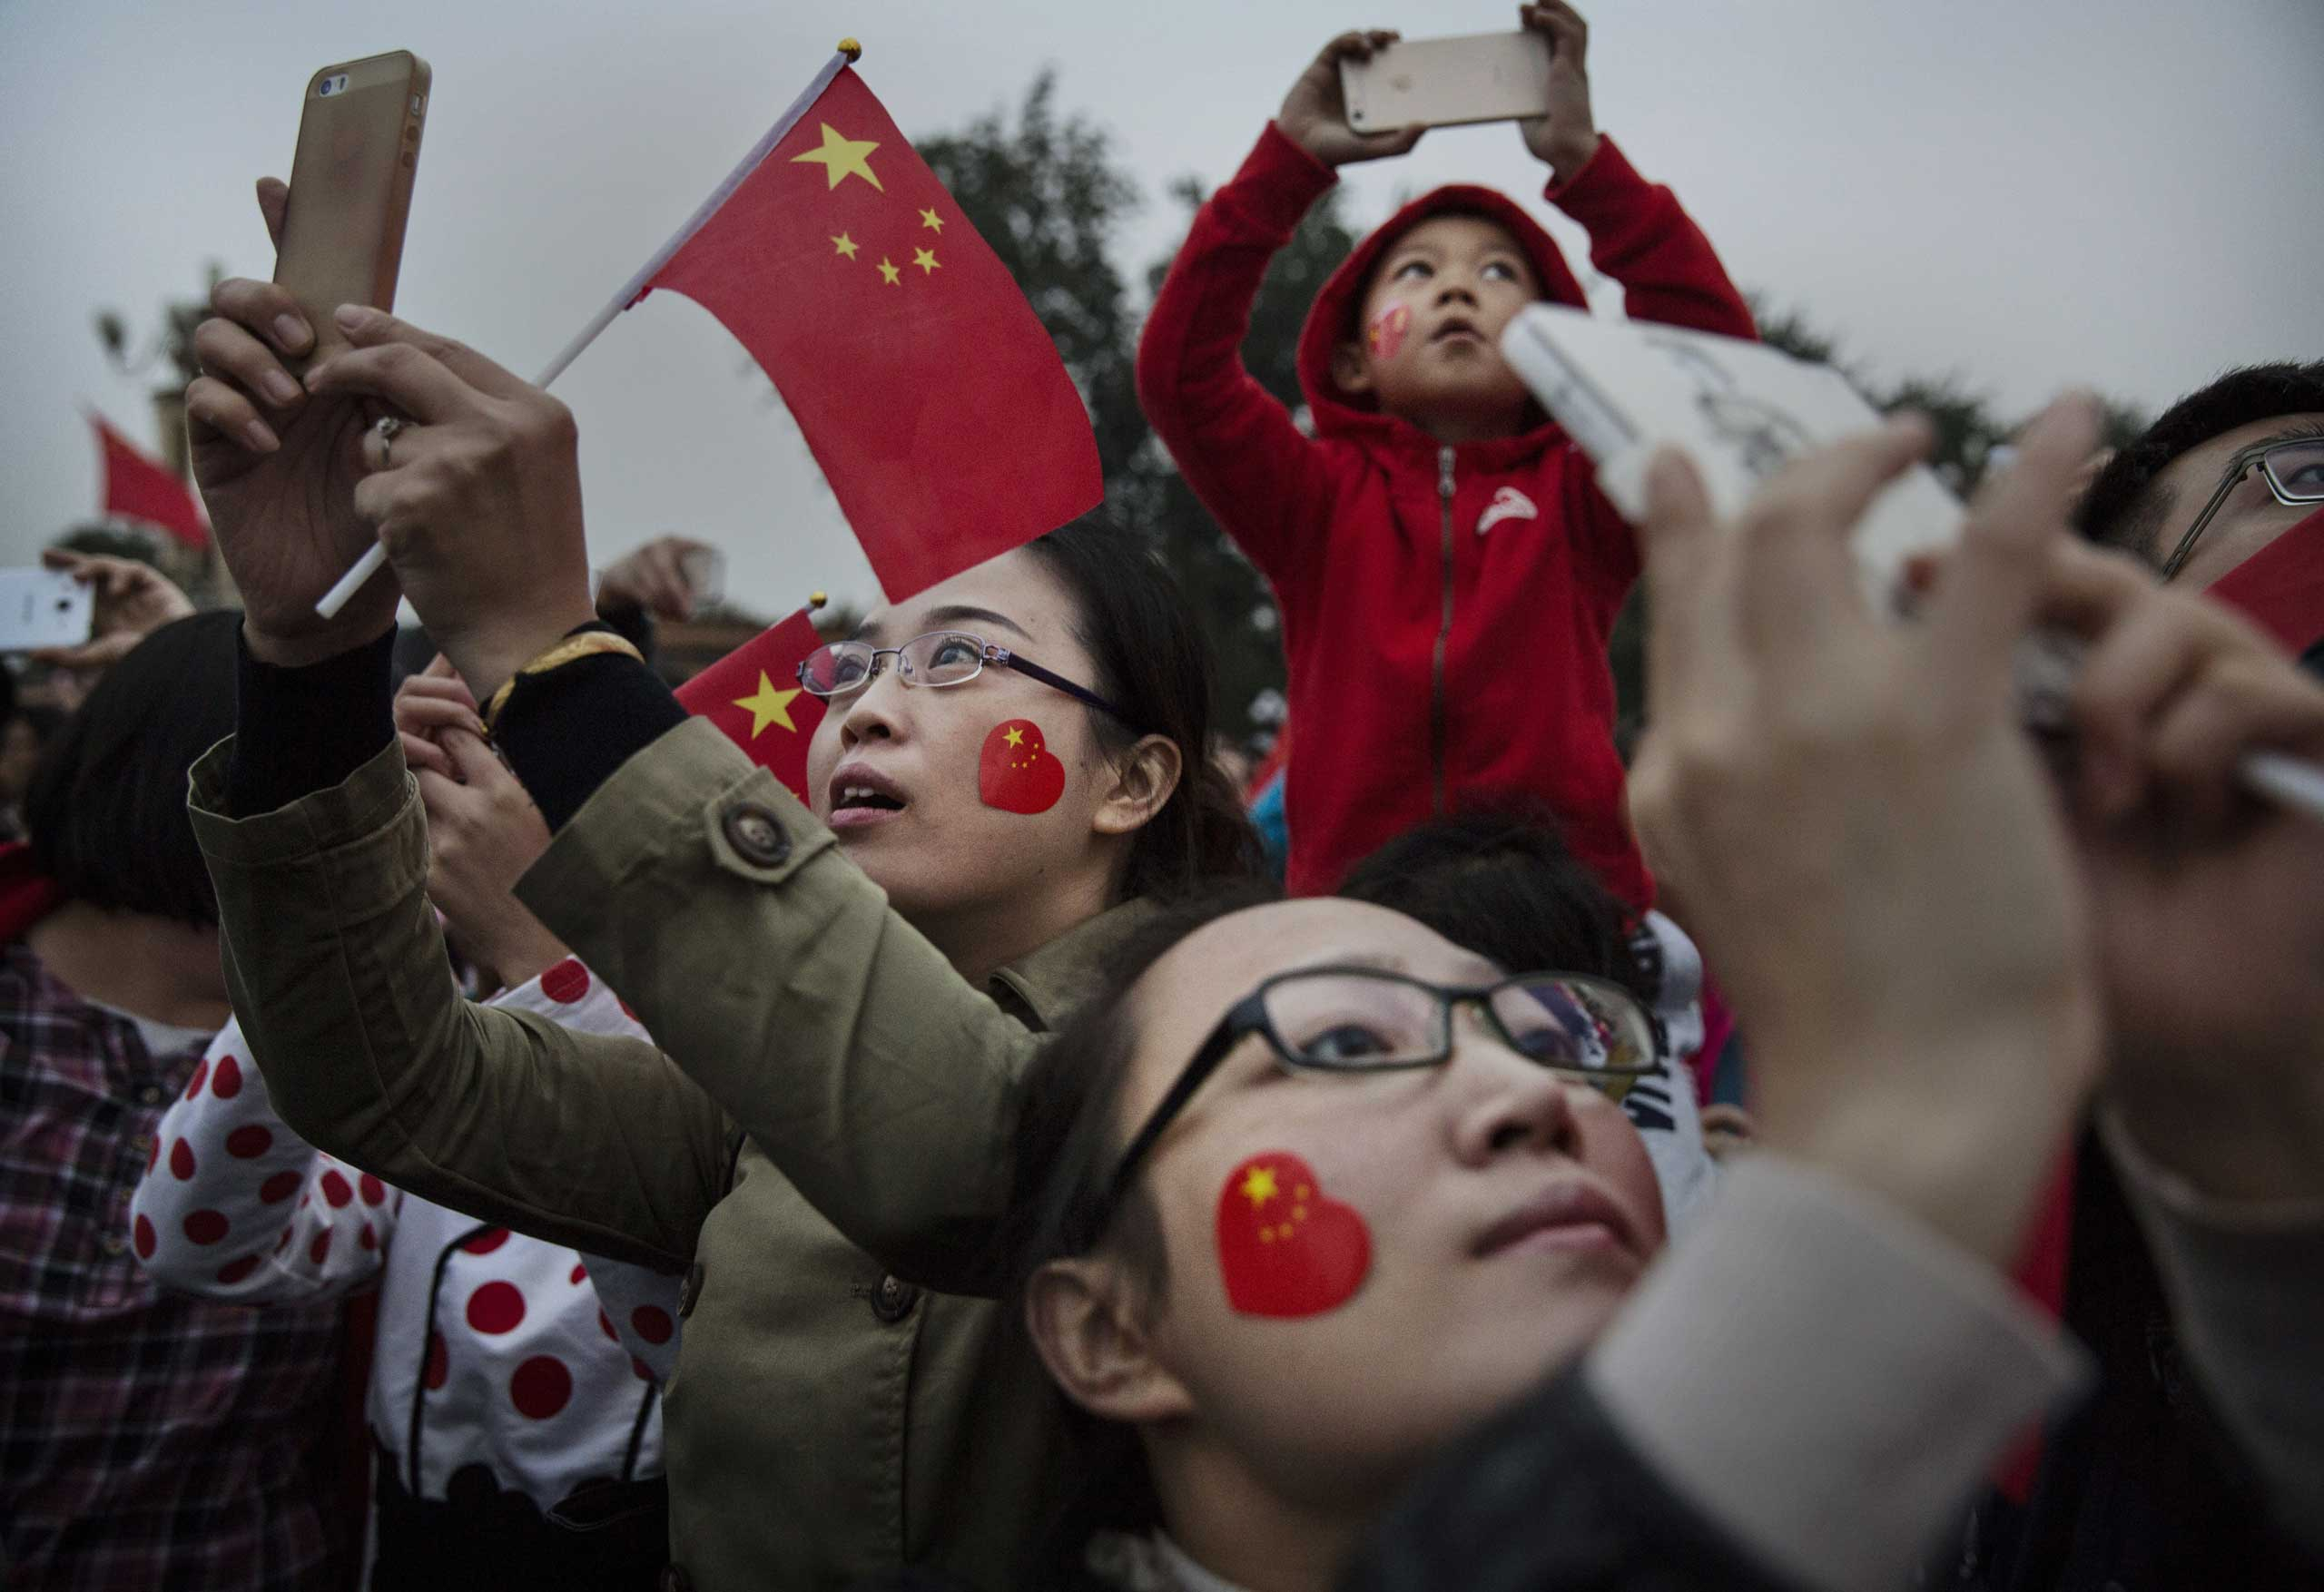 Oct. 1, 2014. Chinese tourists take pictures near Tiananmen Square on the 65th National Day in Beijing, China. The day marks the founding of the People's Republic of China on October 1, 1949.